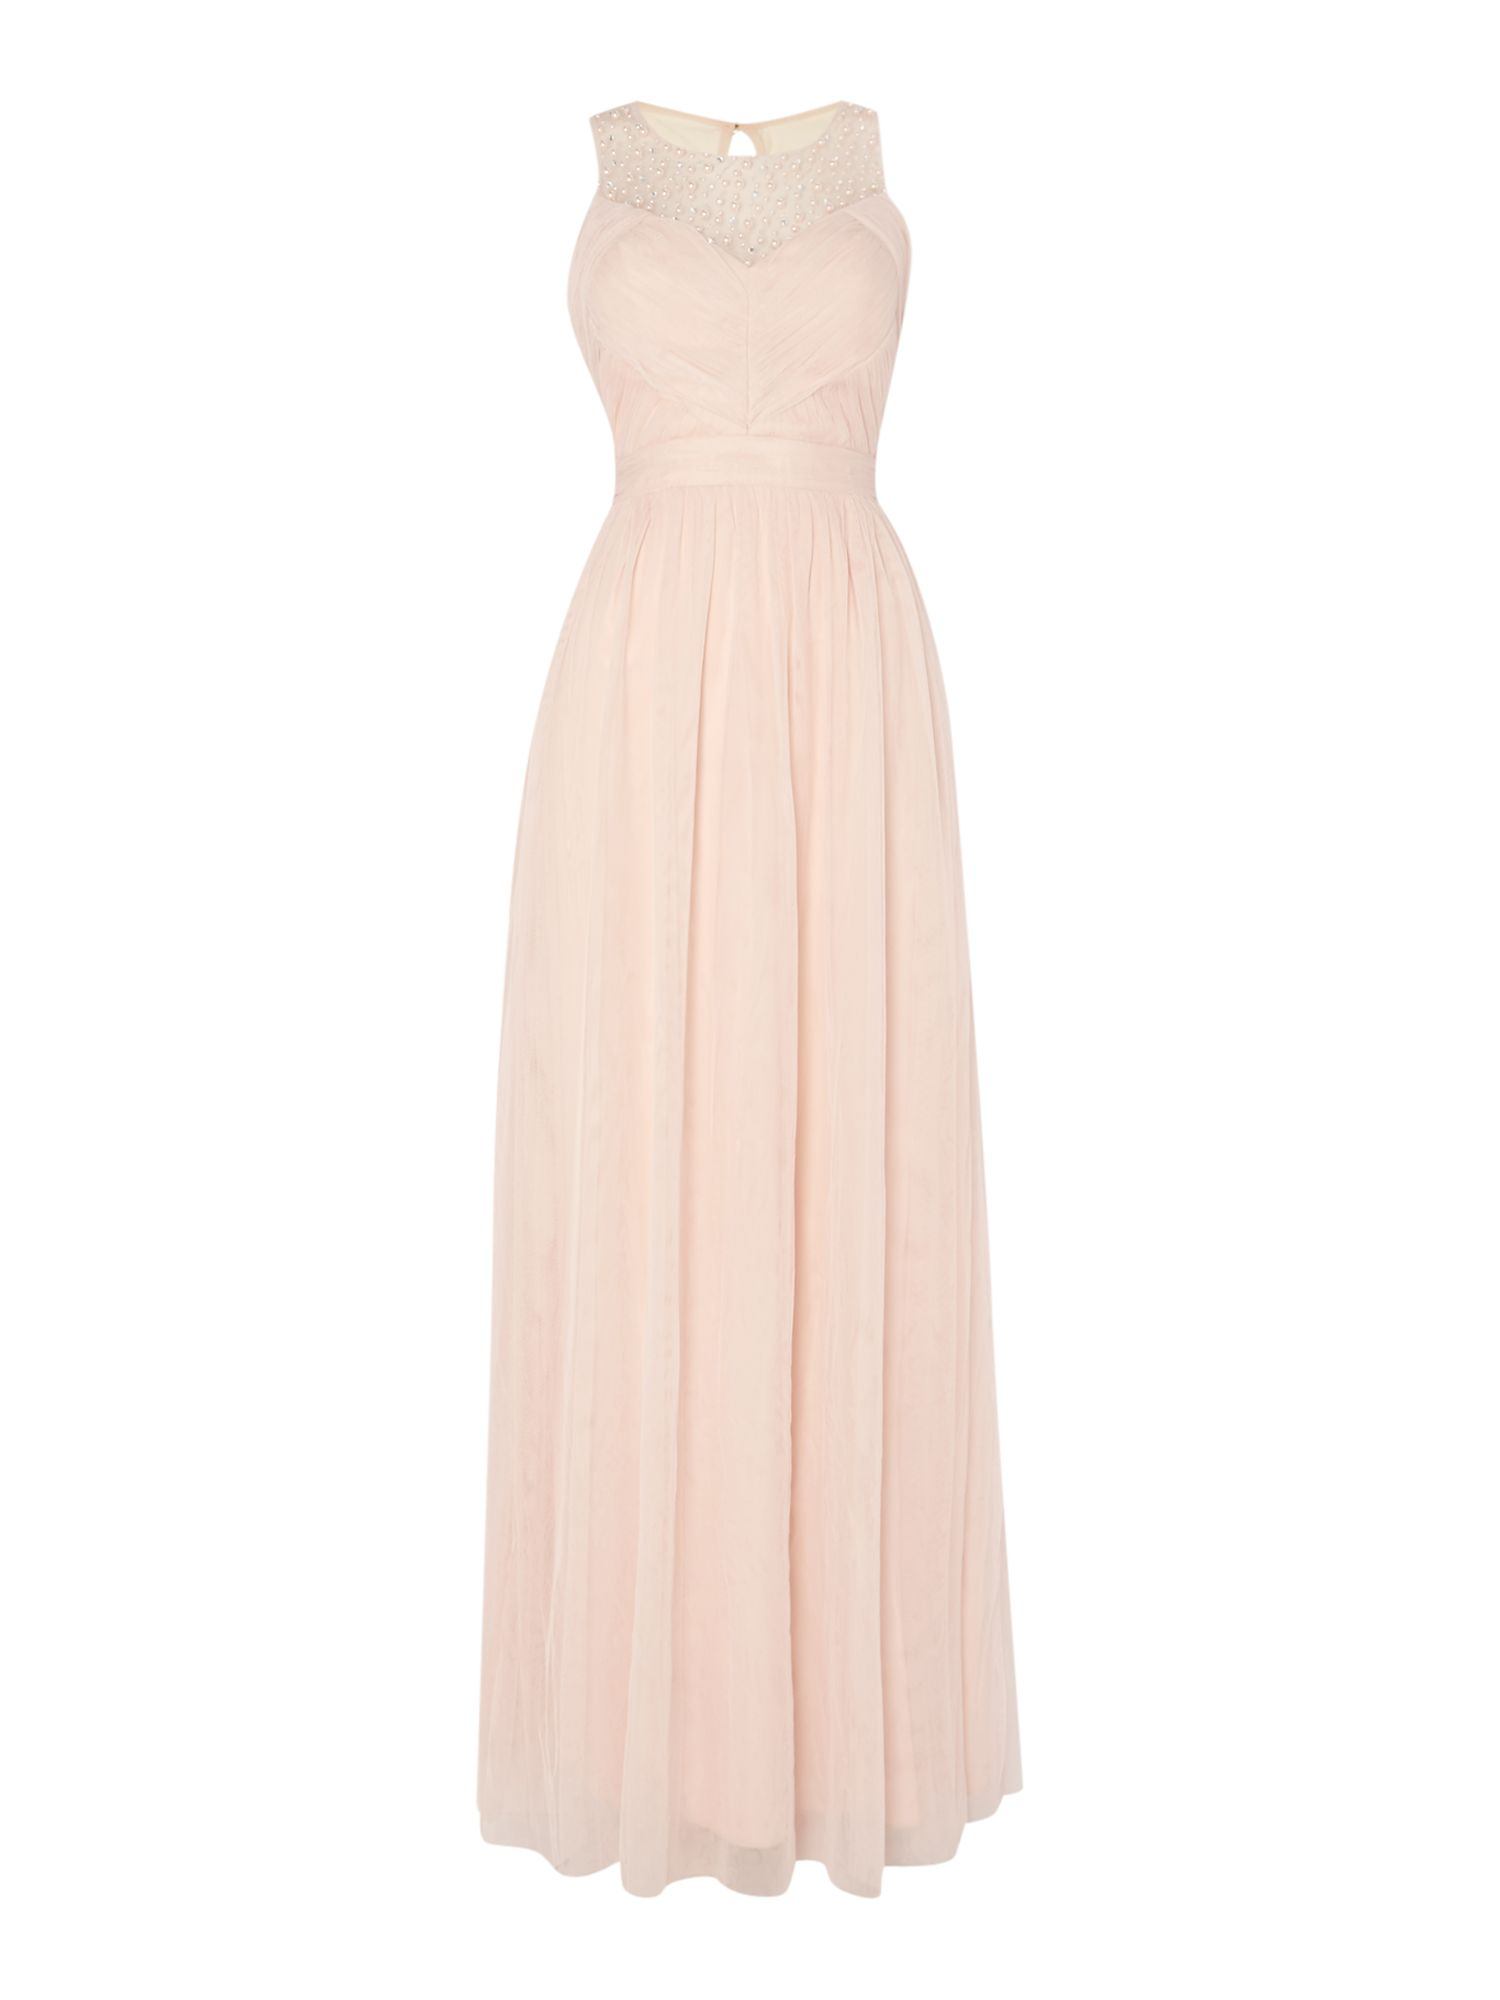 Little Mistress Embellished Sleeveless Pleat Detail Maxi Dress, Nude